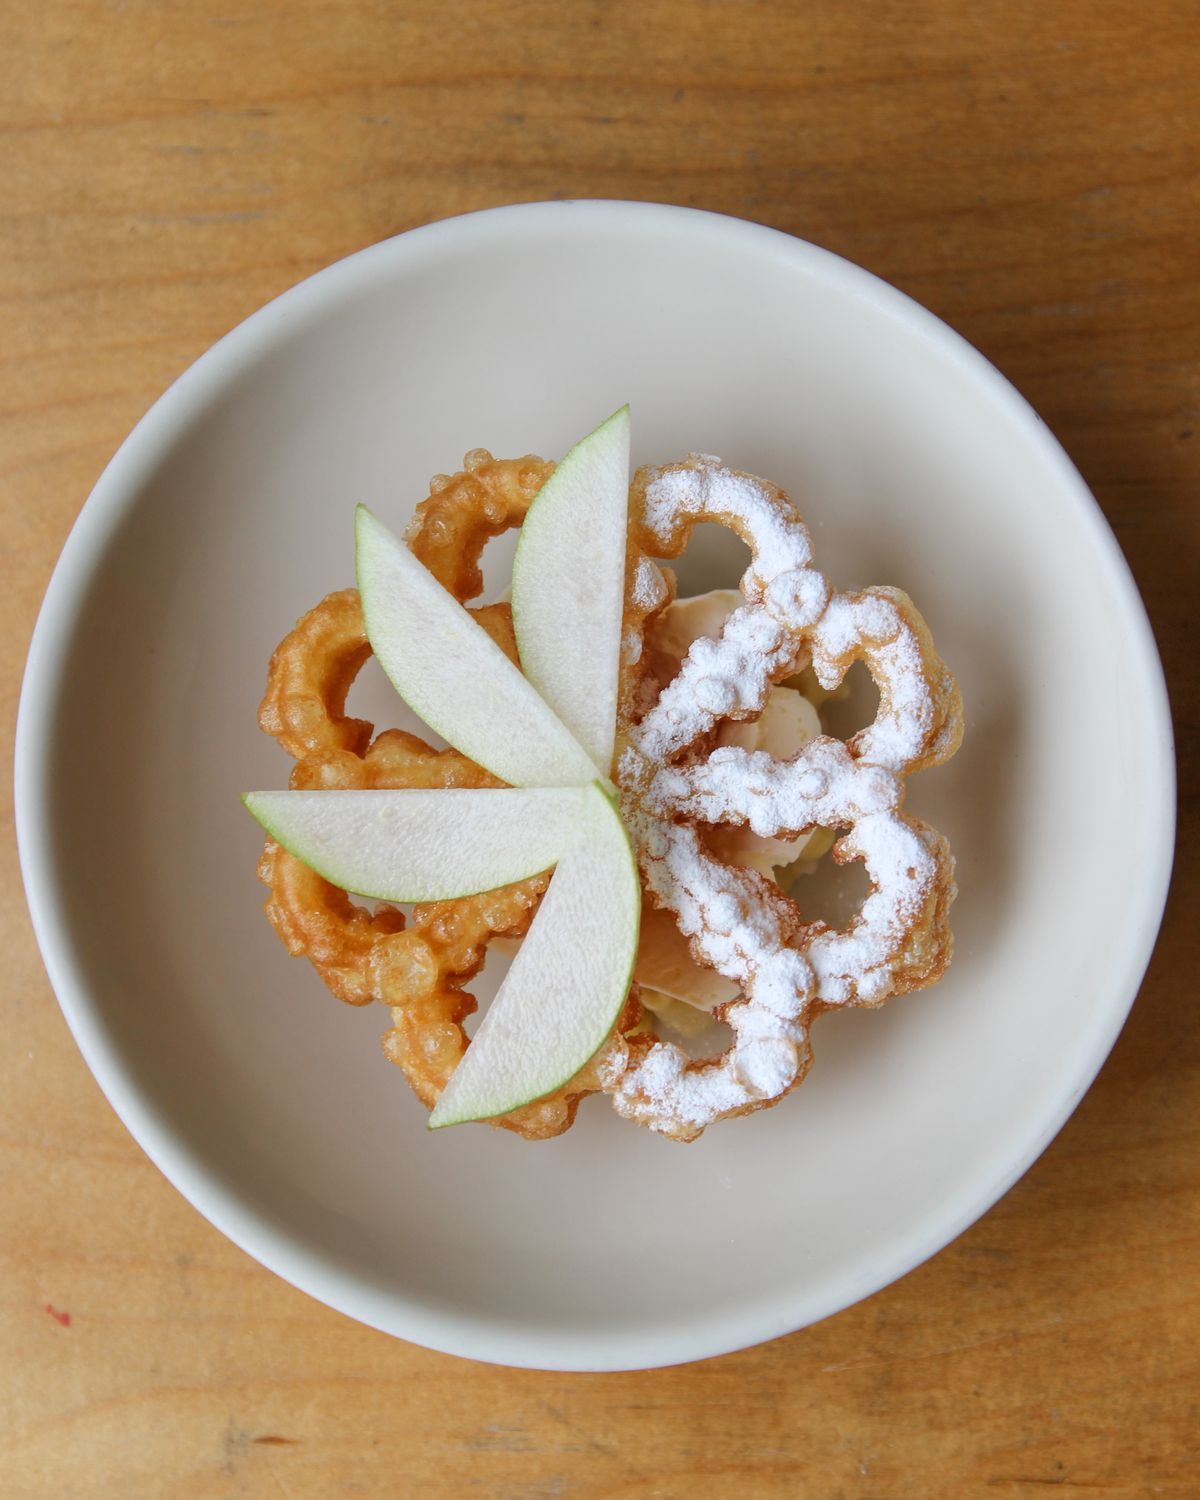 A fried piece of dough topped with slices of pears and some icing sugar